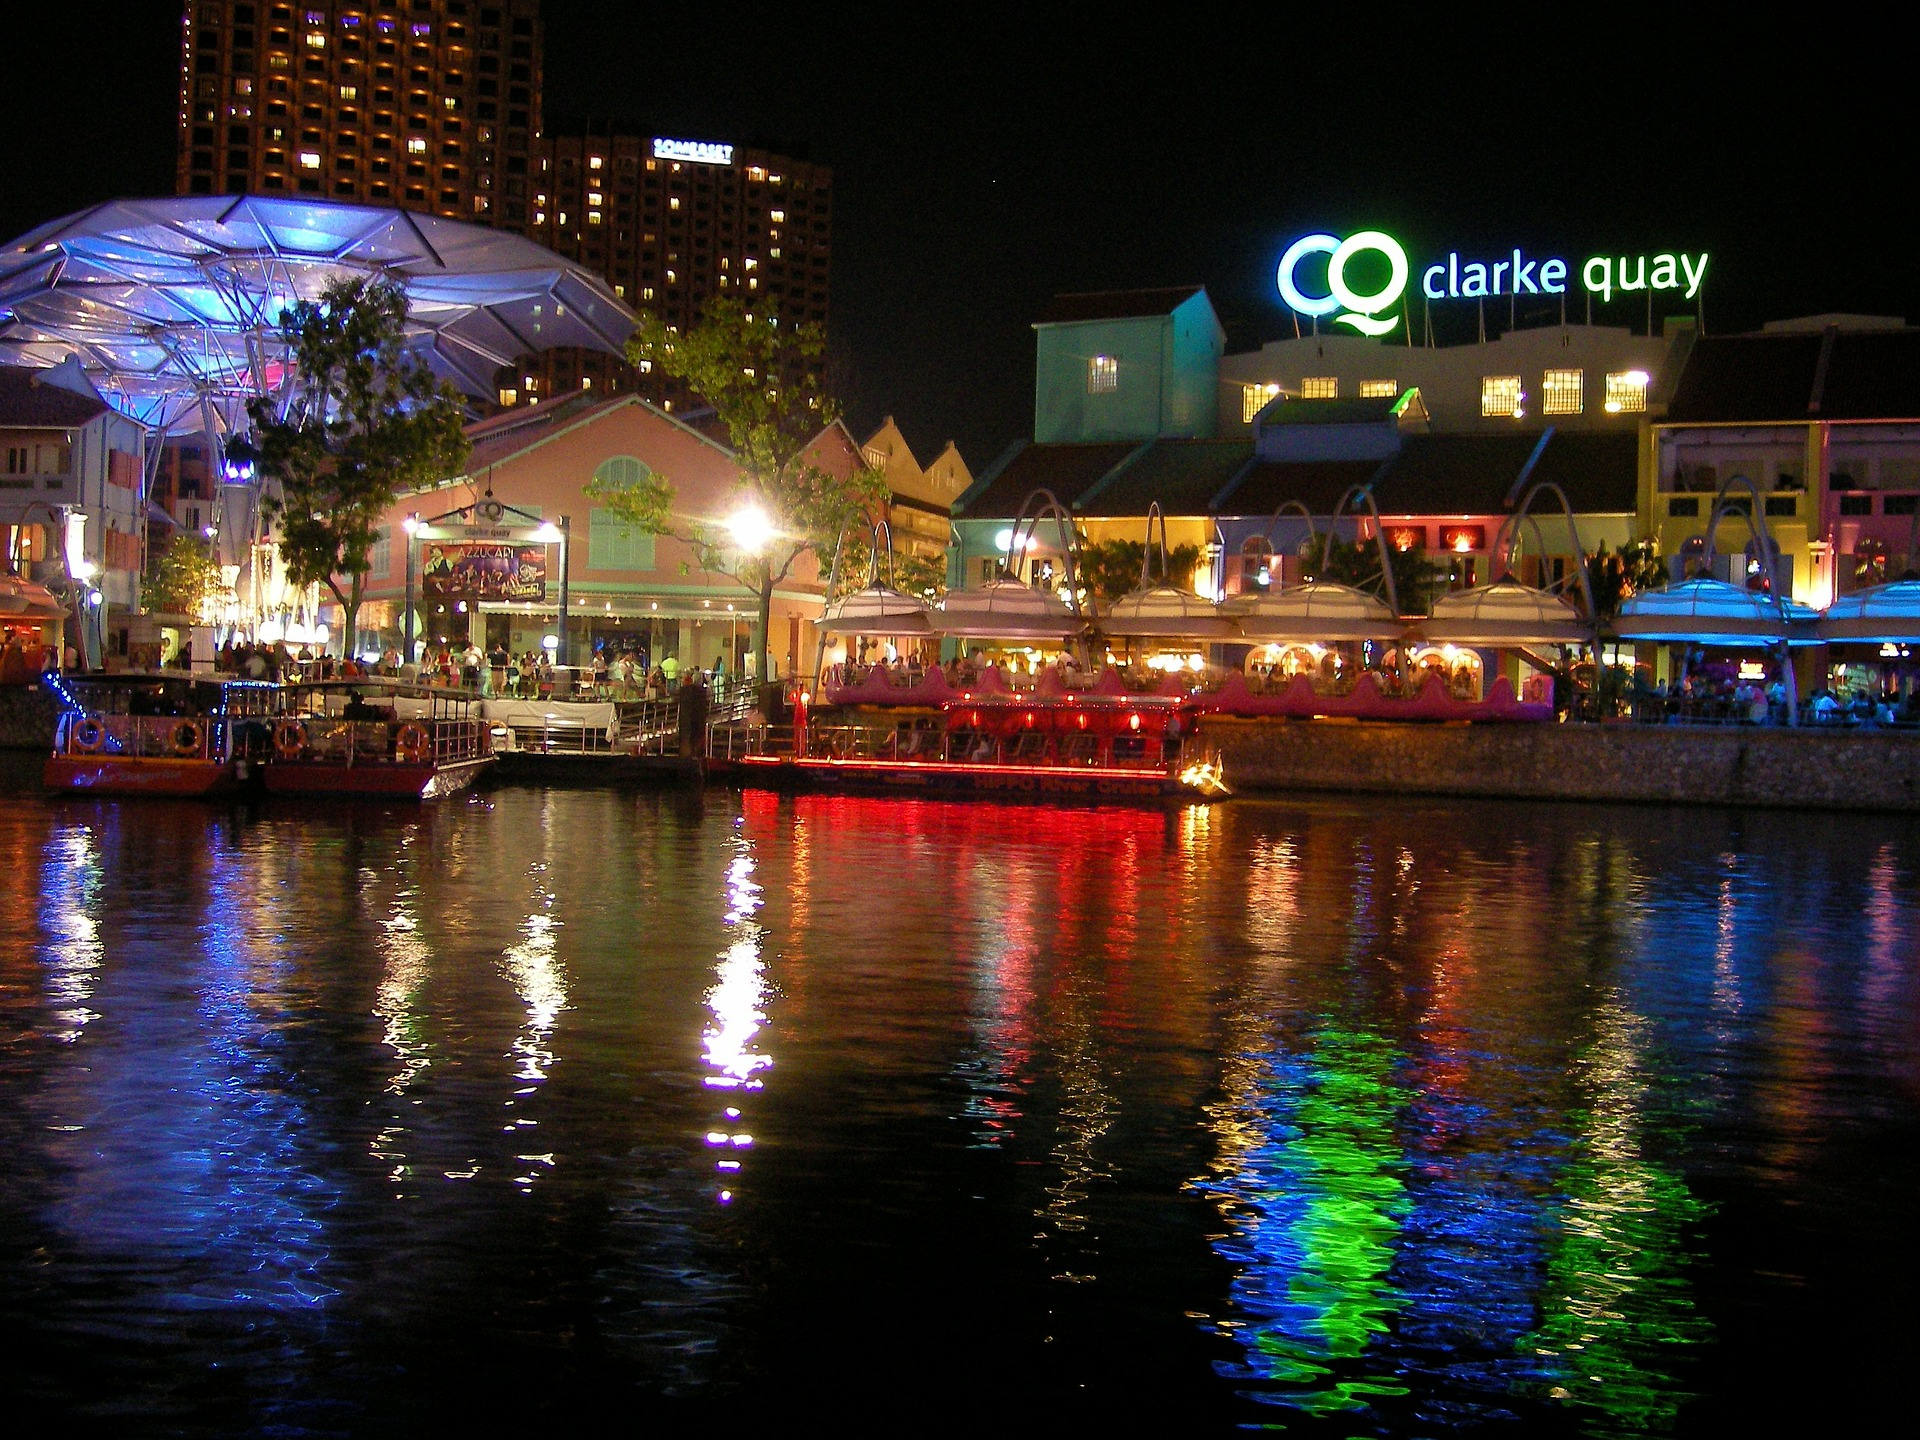 Riverside view of clarke quay at night